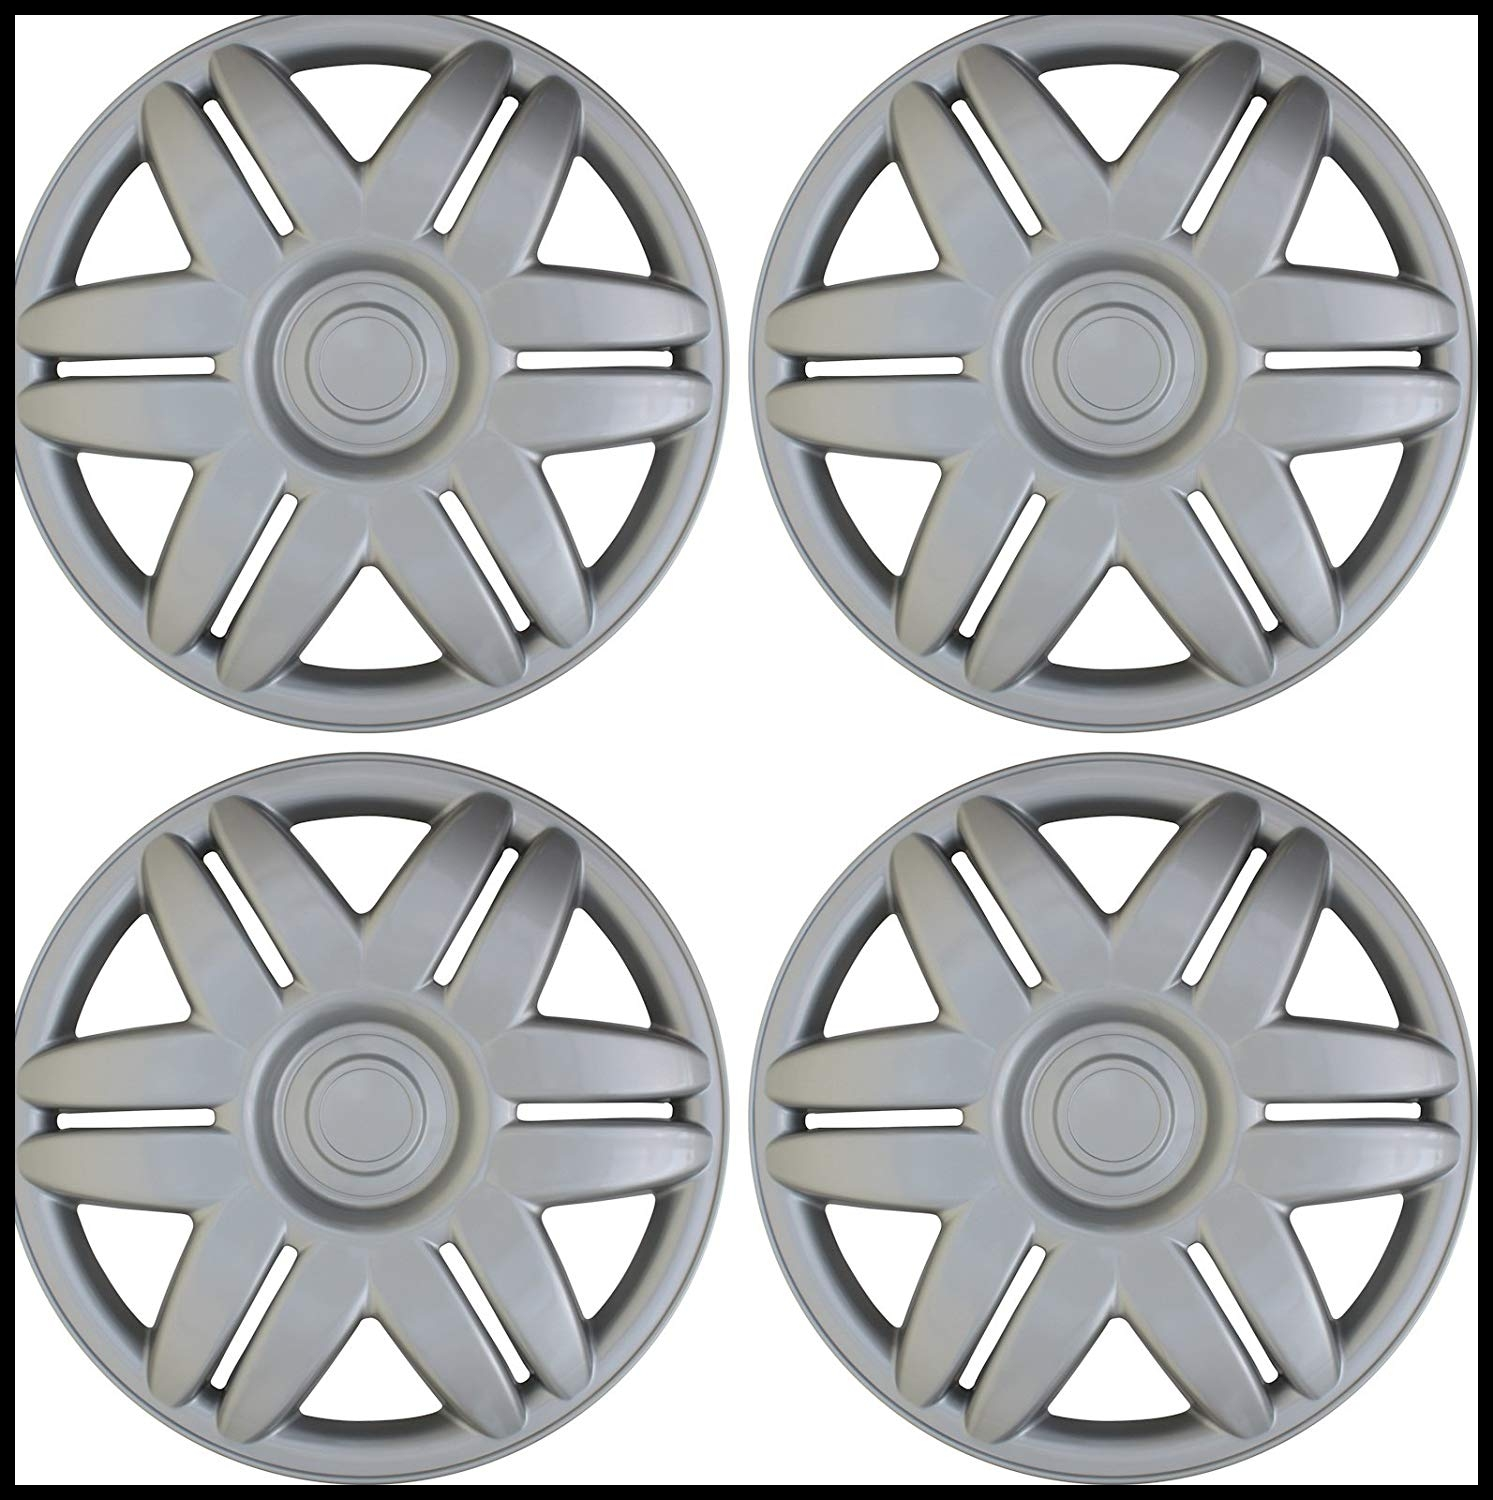 "Amazon 15"" Set of 4 Hubcaps 2000 2001 Toyota Camry Wheel Covers Design Are Universal Hub Caps Fit Most 15 Inch Wheels Automotive"